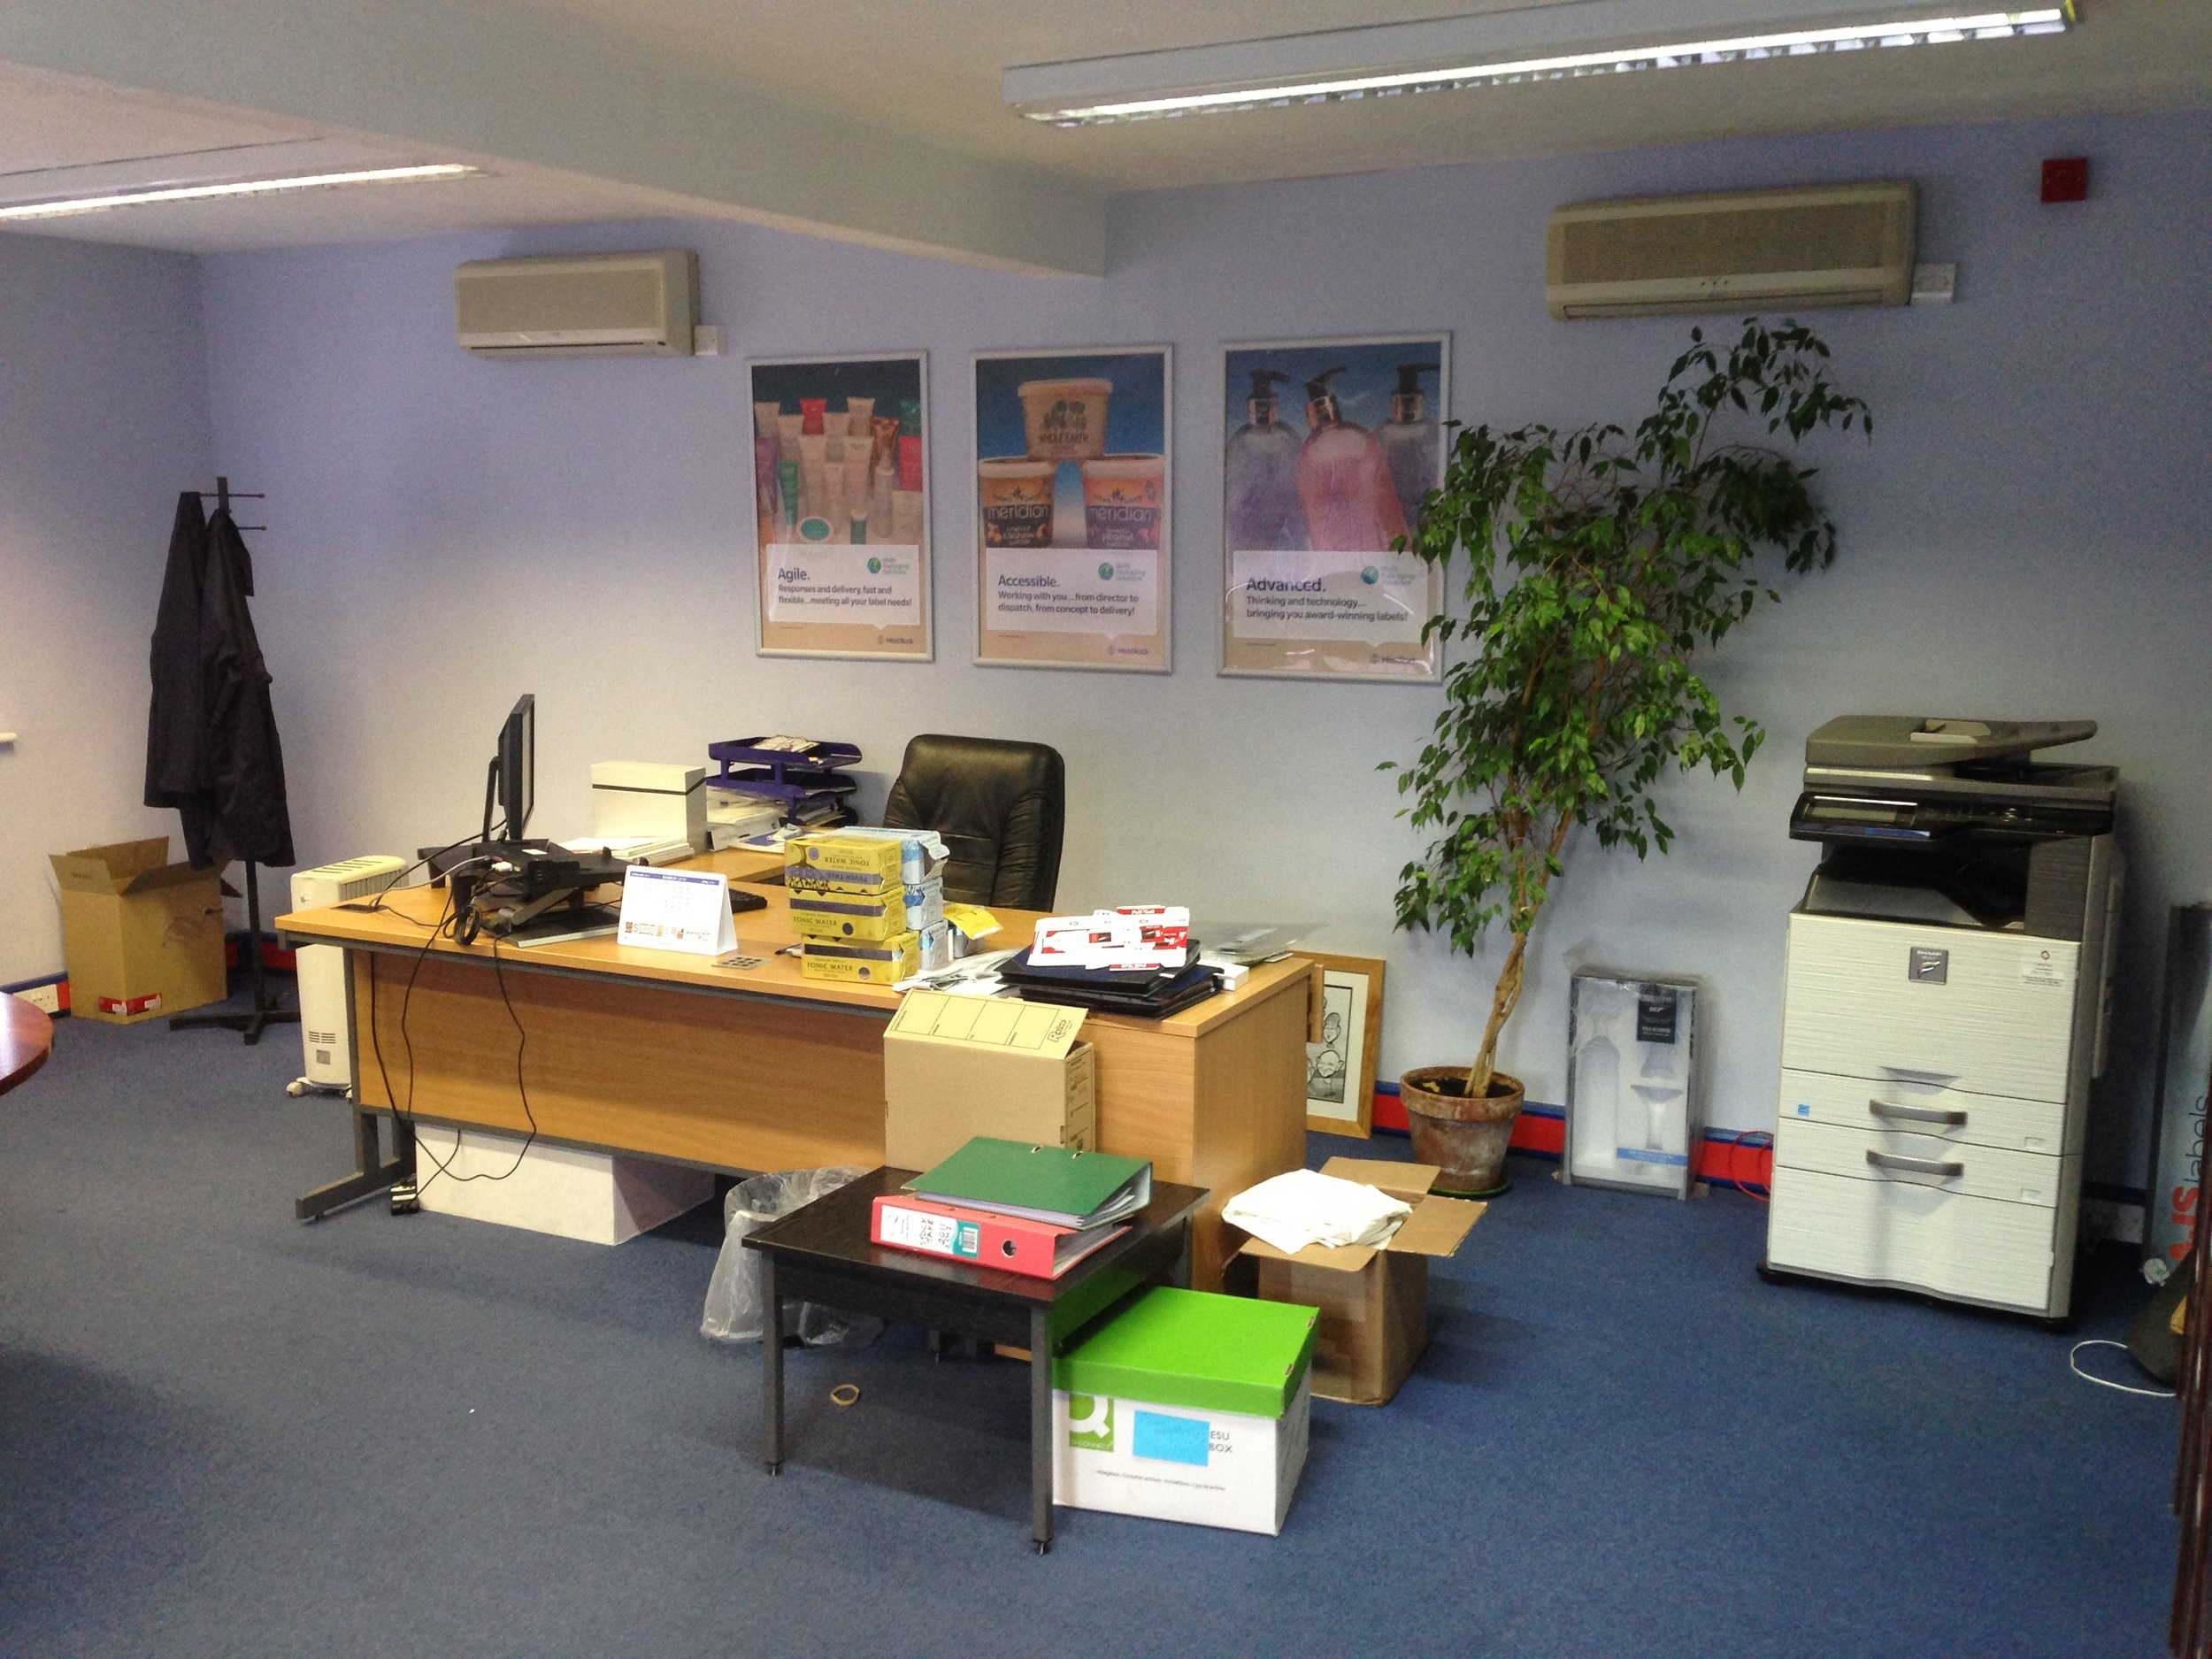 Office remodelling - design and refit - Littlehampton manufacturing sector-17